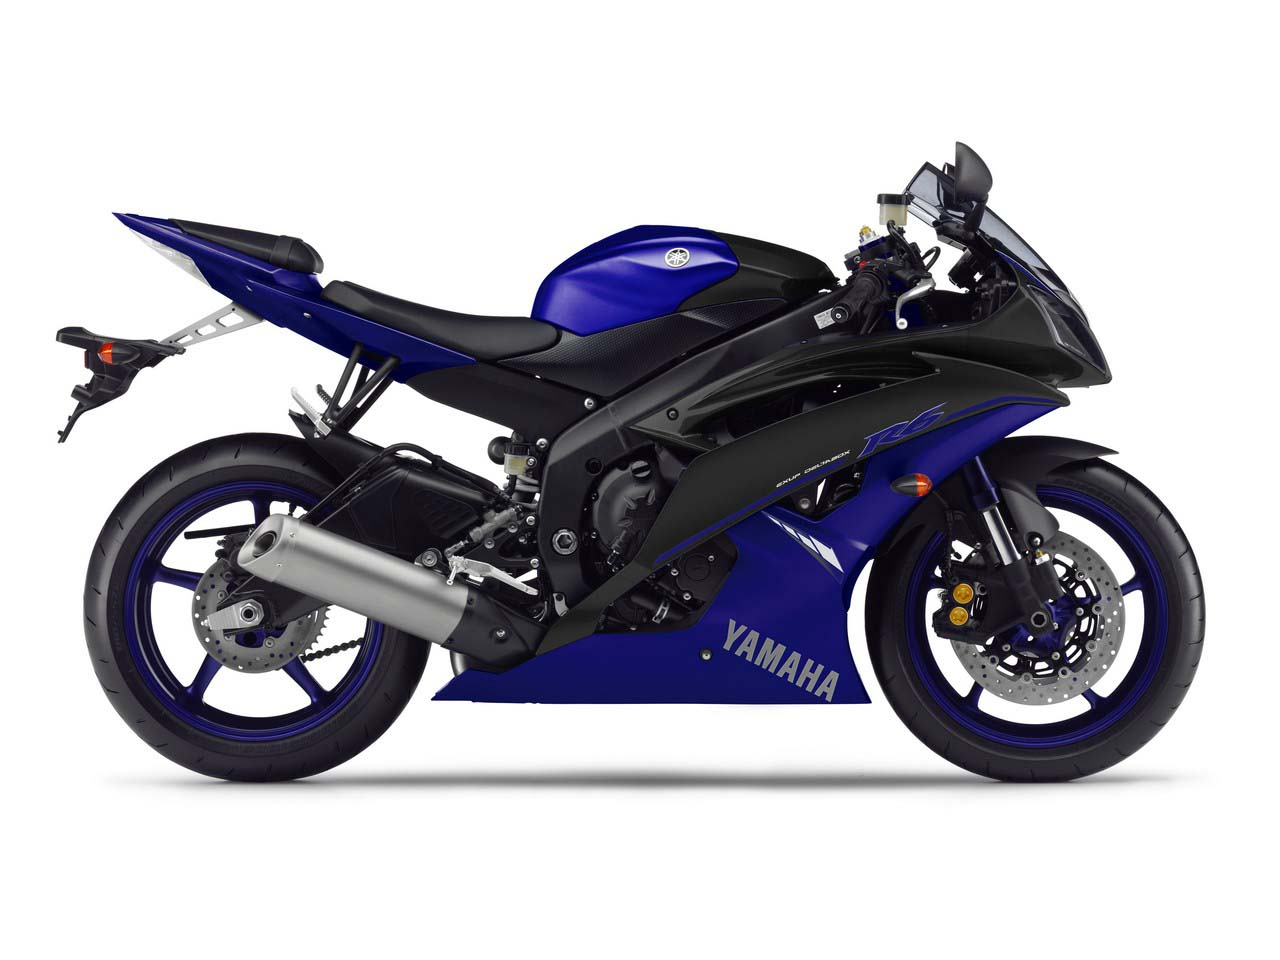 yamaha r1 blue bike - photo #14